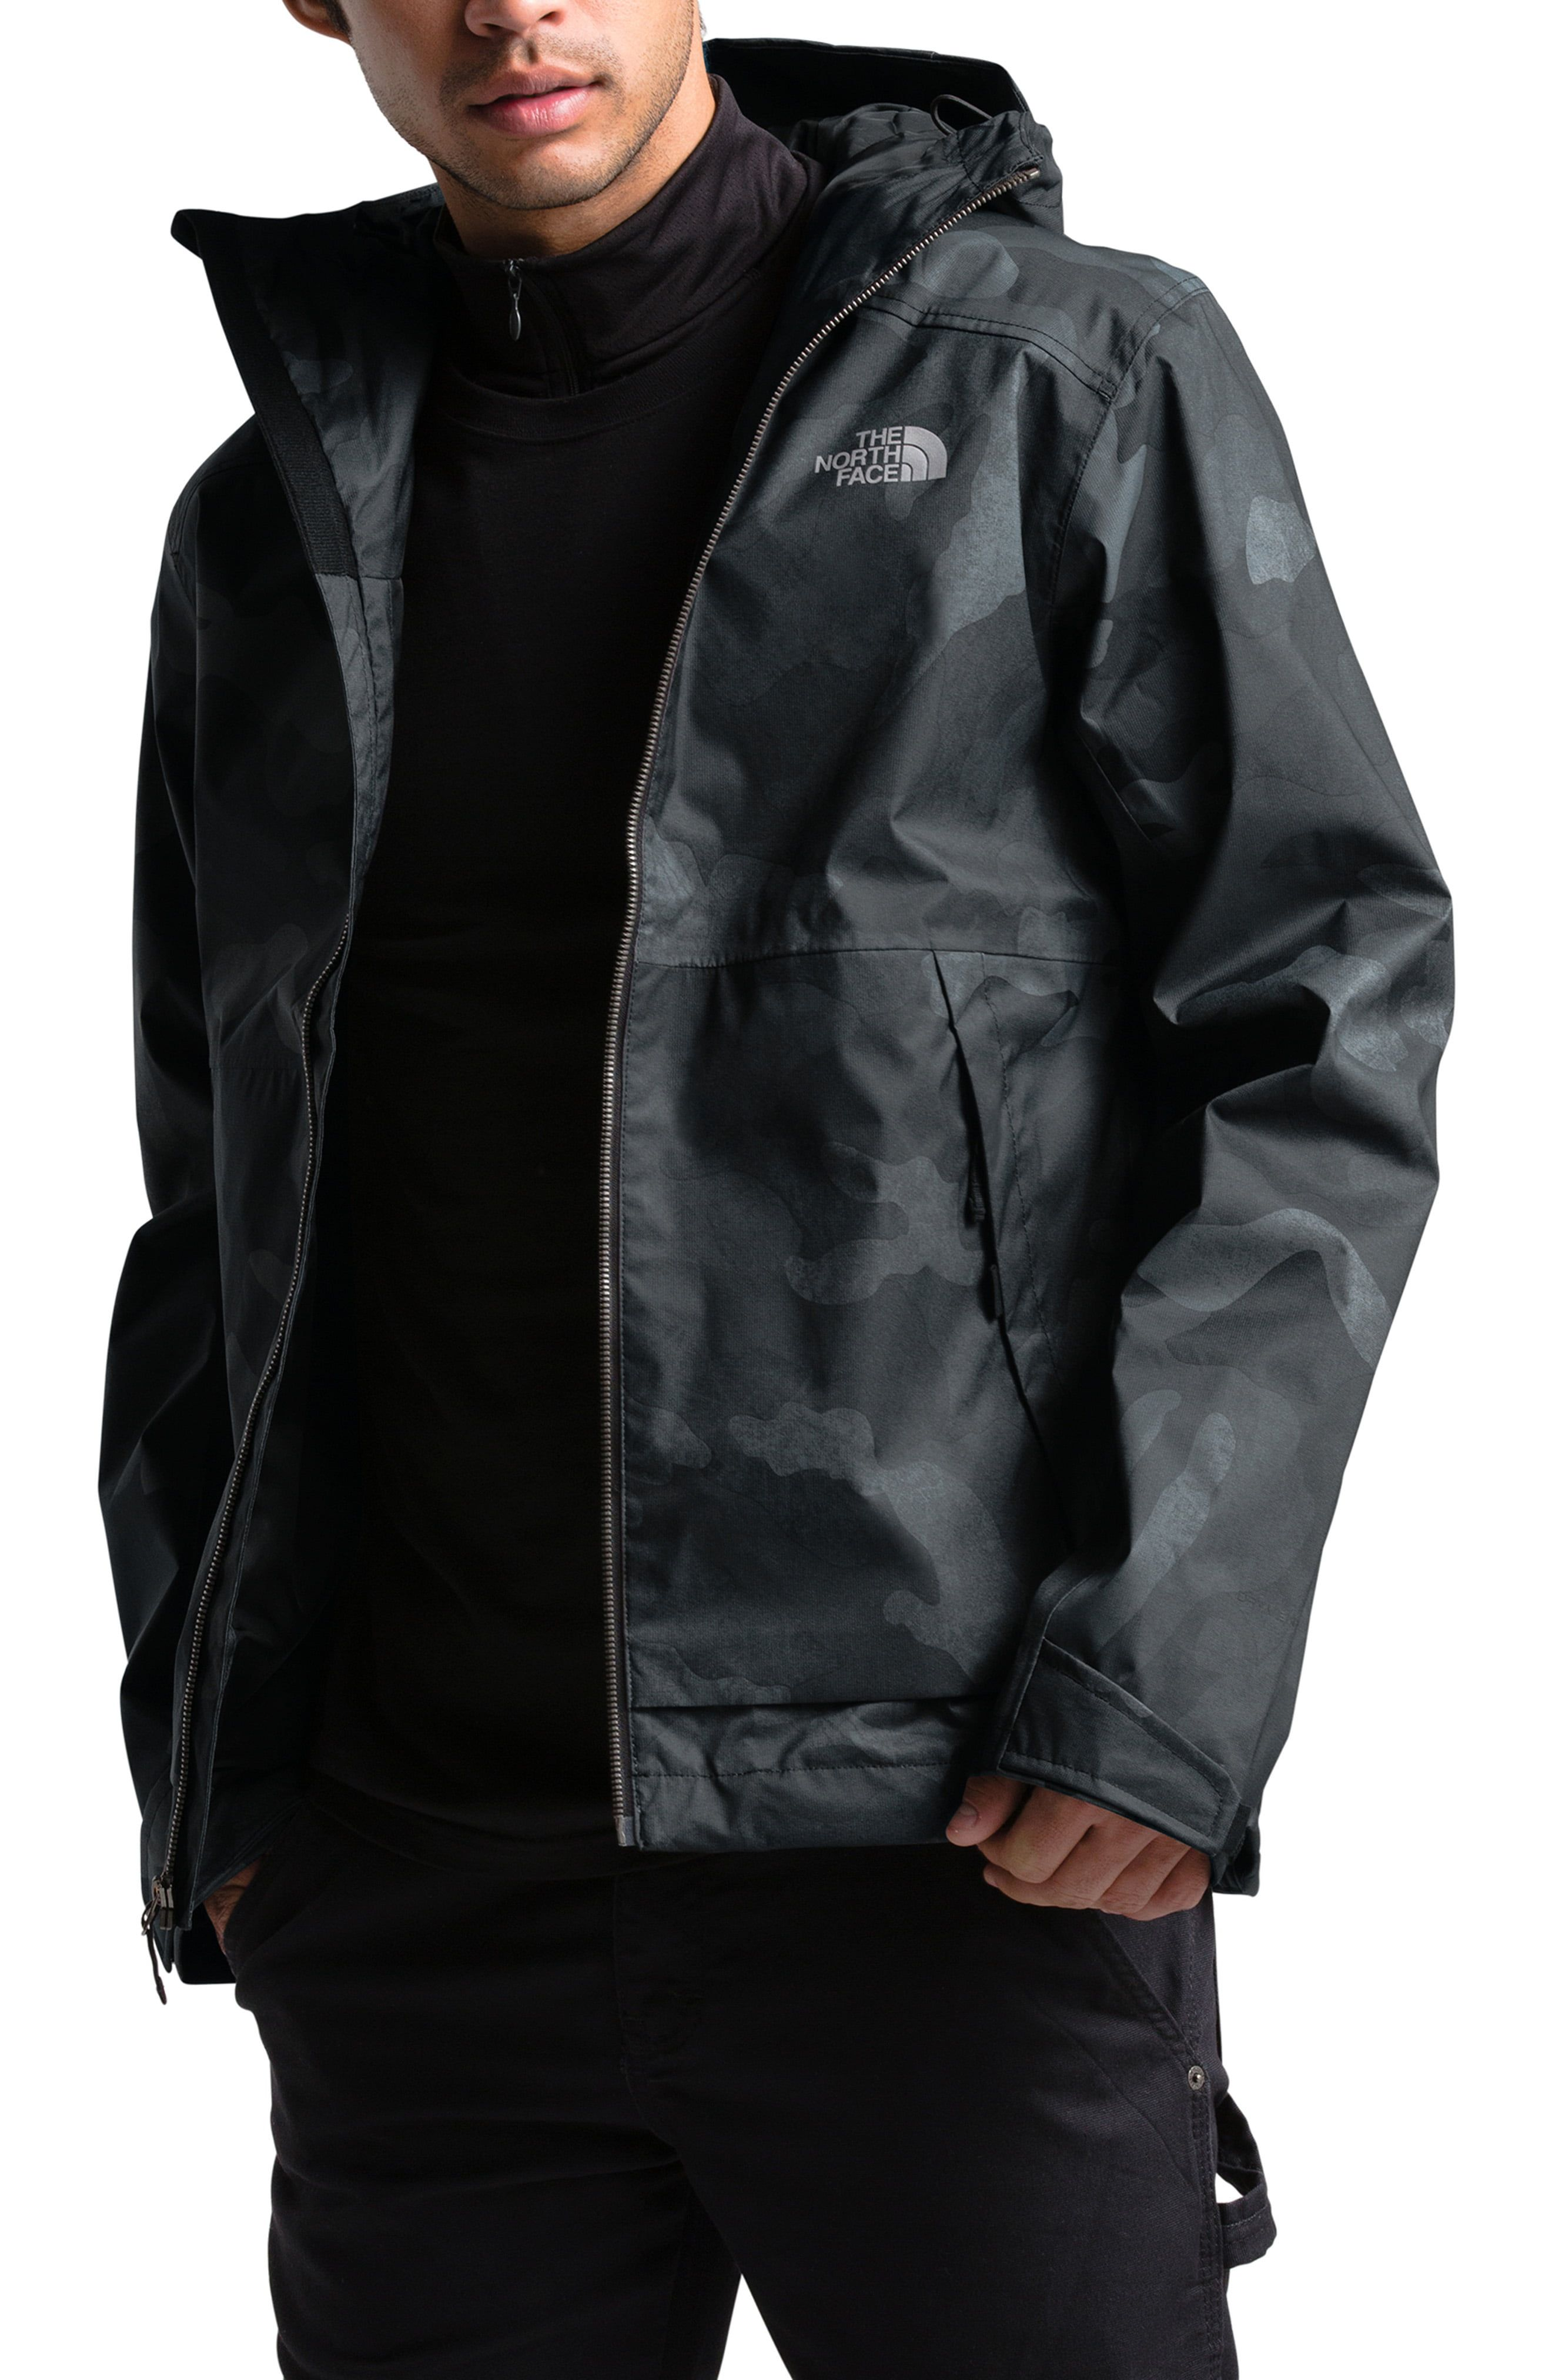 The North Face Millerton Hooded Jacket Nordstrom In 2021 Men S Coats And Jackets Hoodies Men Clothing Brand [ 4048 x 2640 Pixel ]